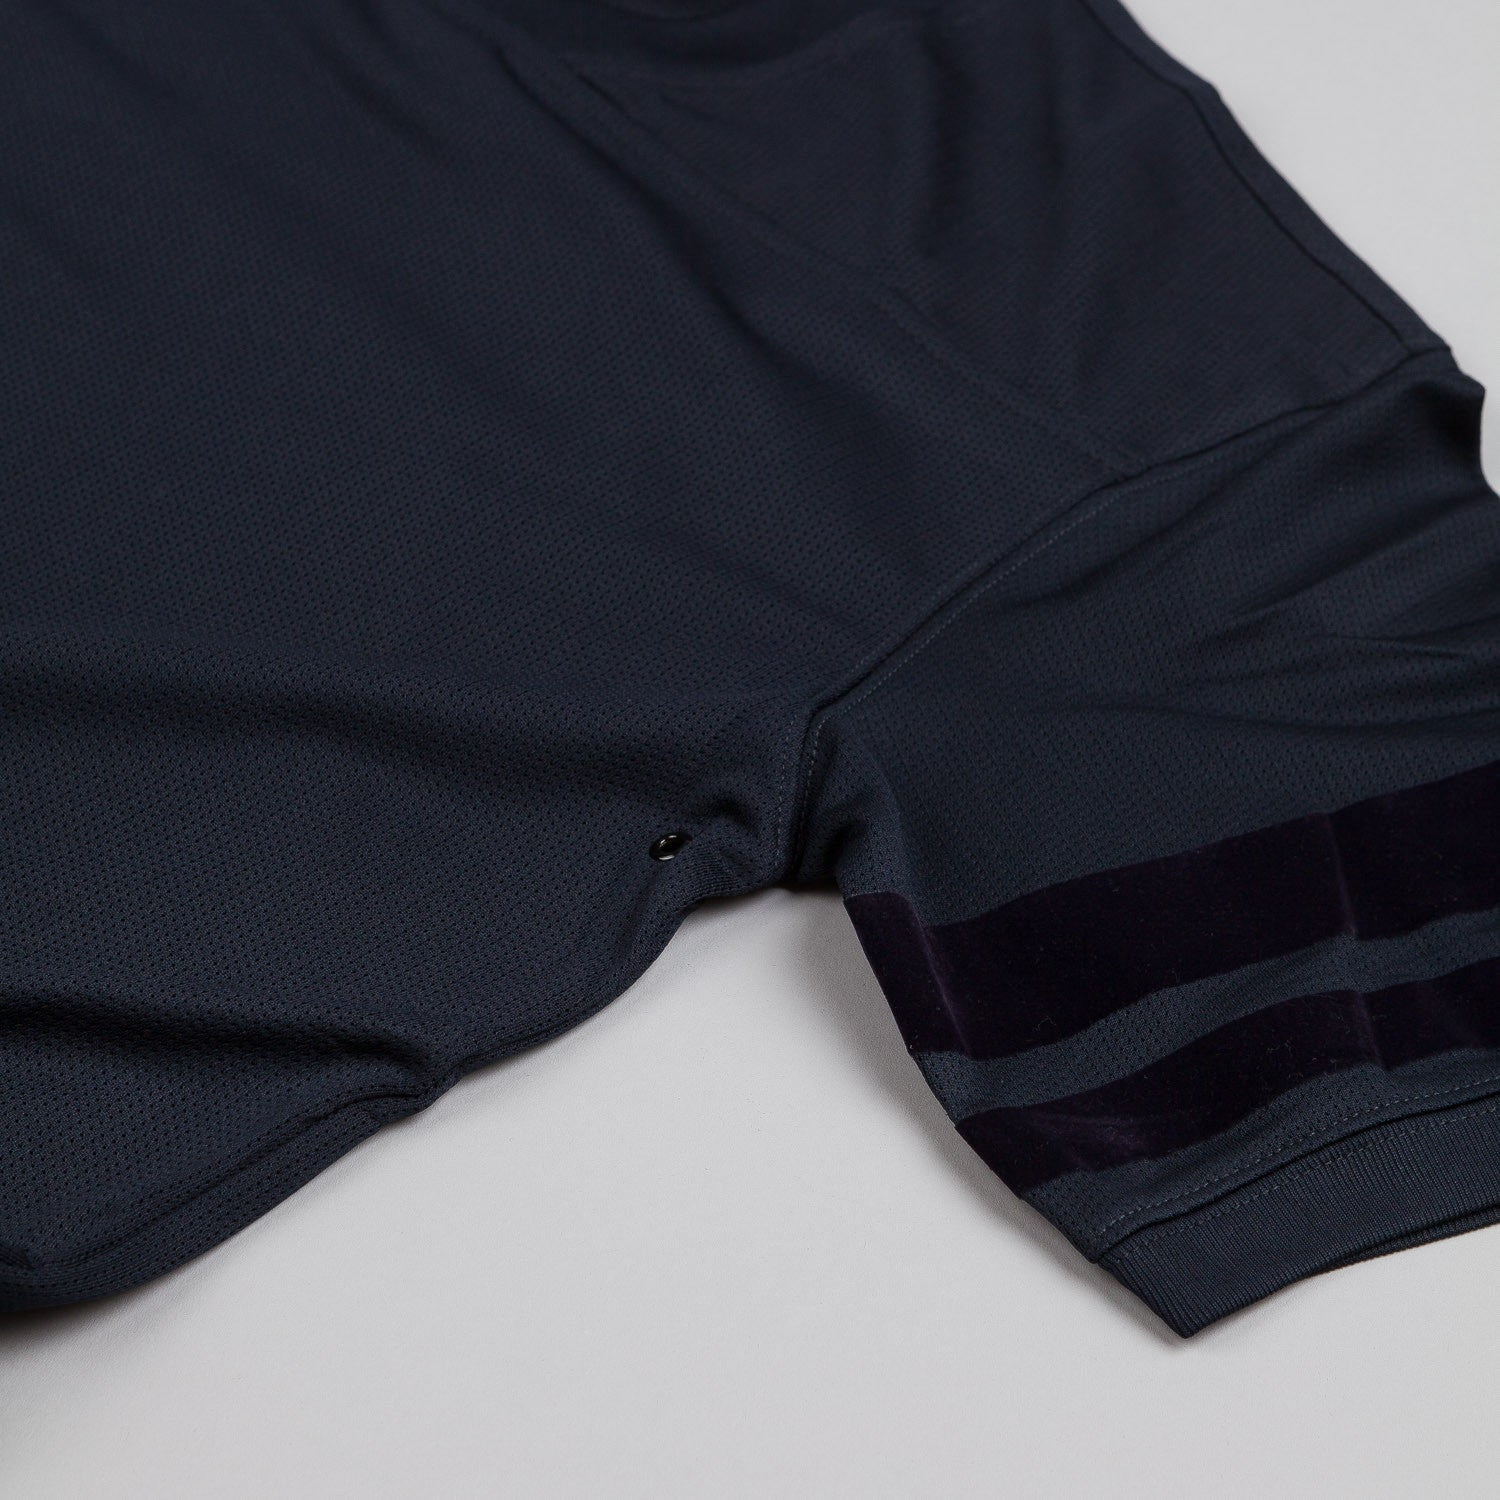 10.Deep Zip Drive Mesh Football Jersey Navy